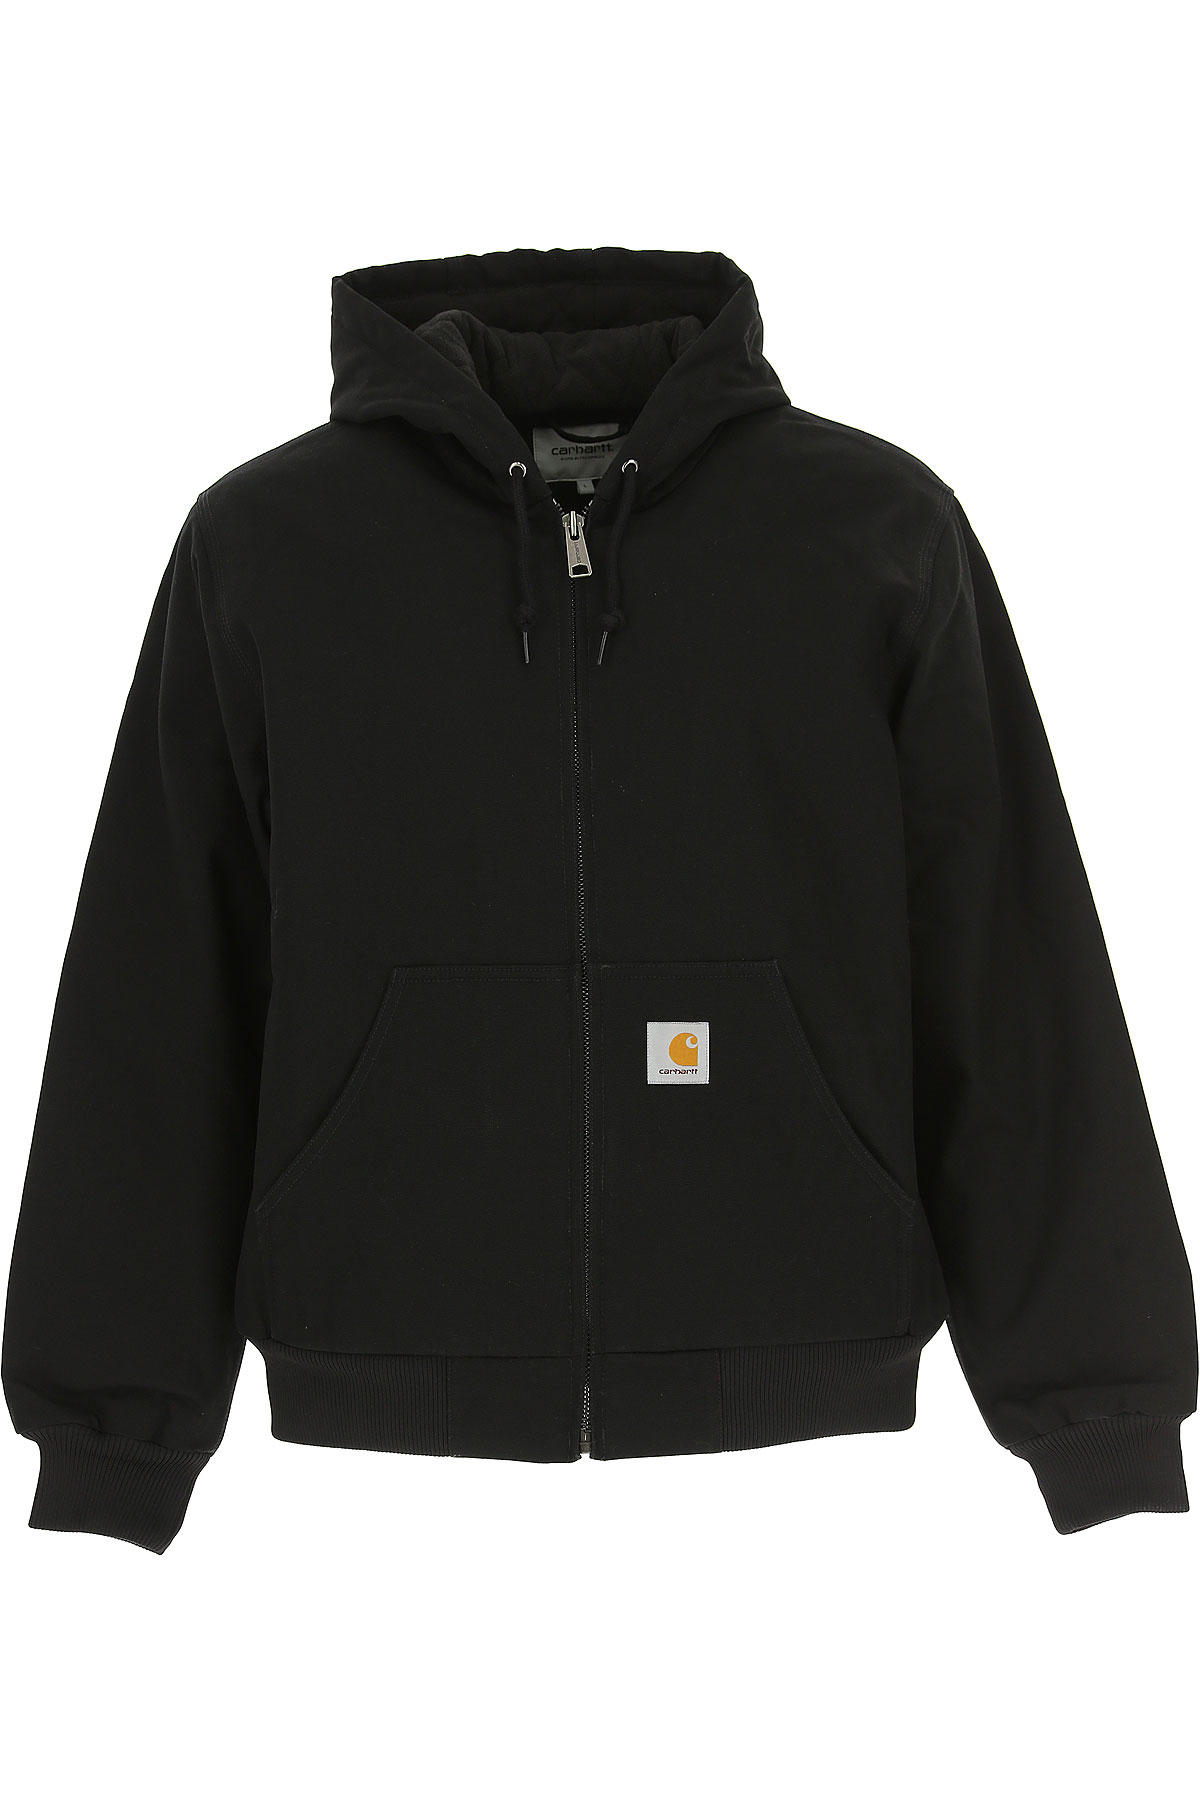 Image of Carhartt Jacket for Men, Black, polyester, 2017, L M S XL